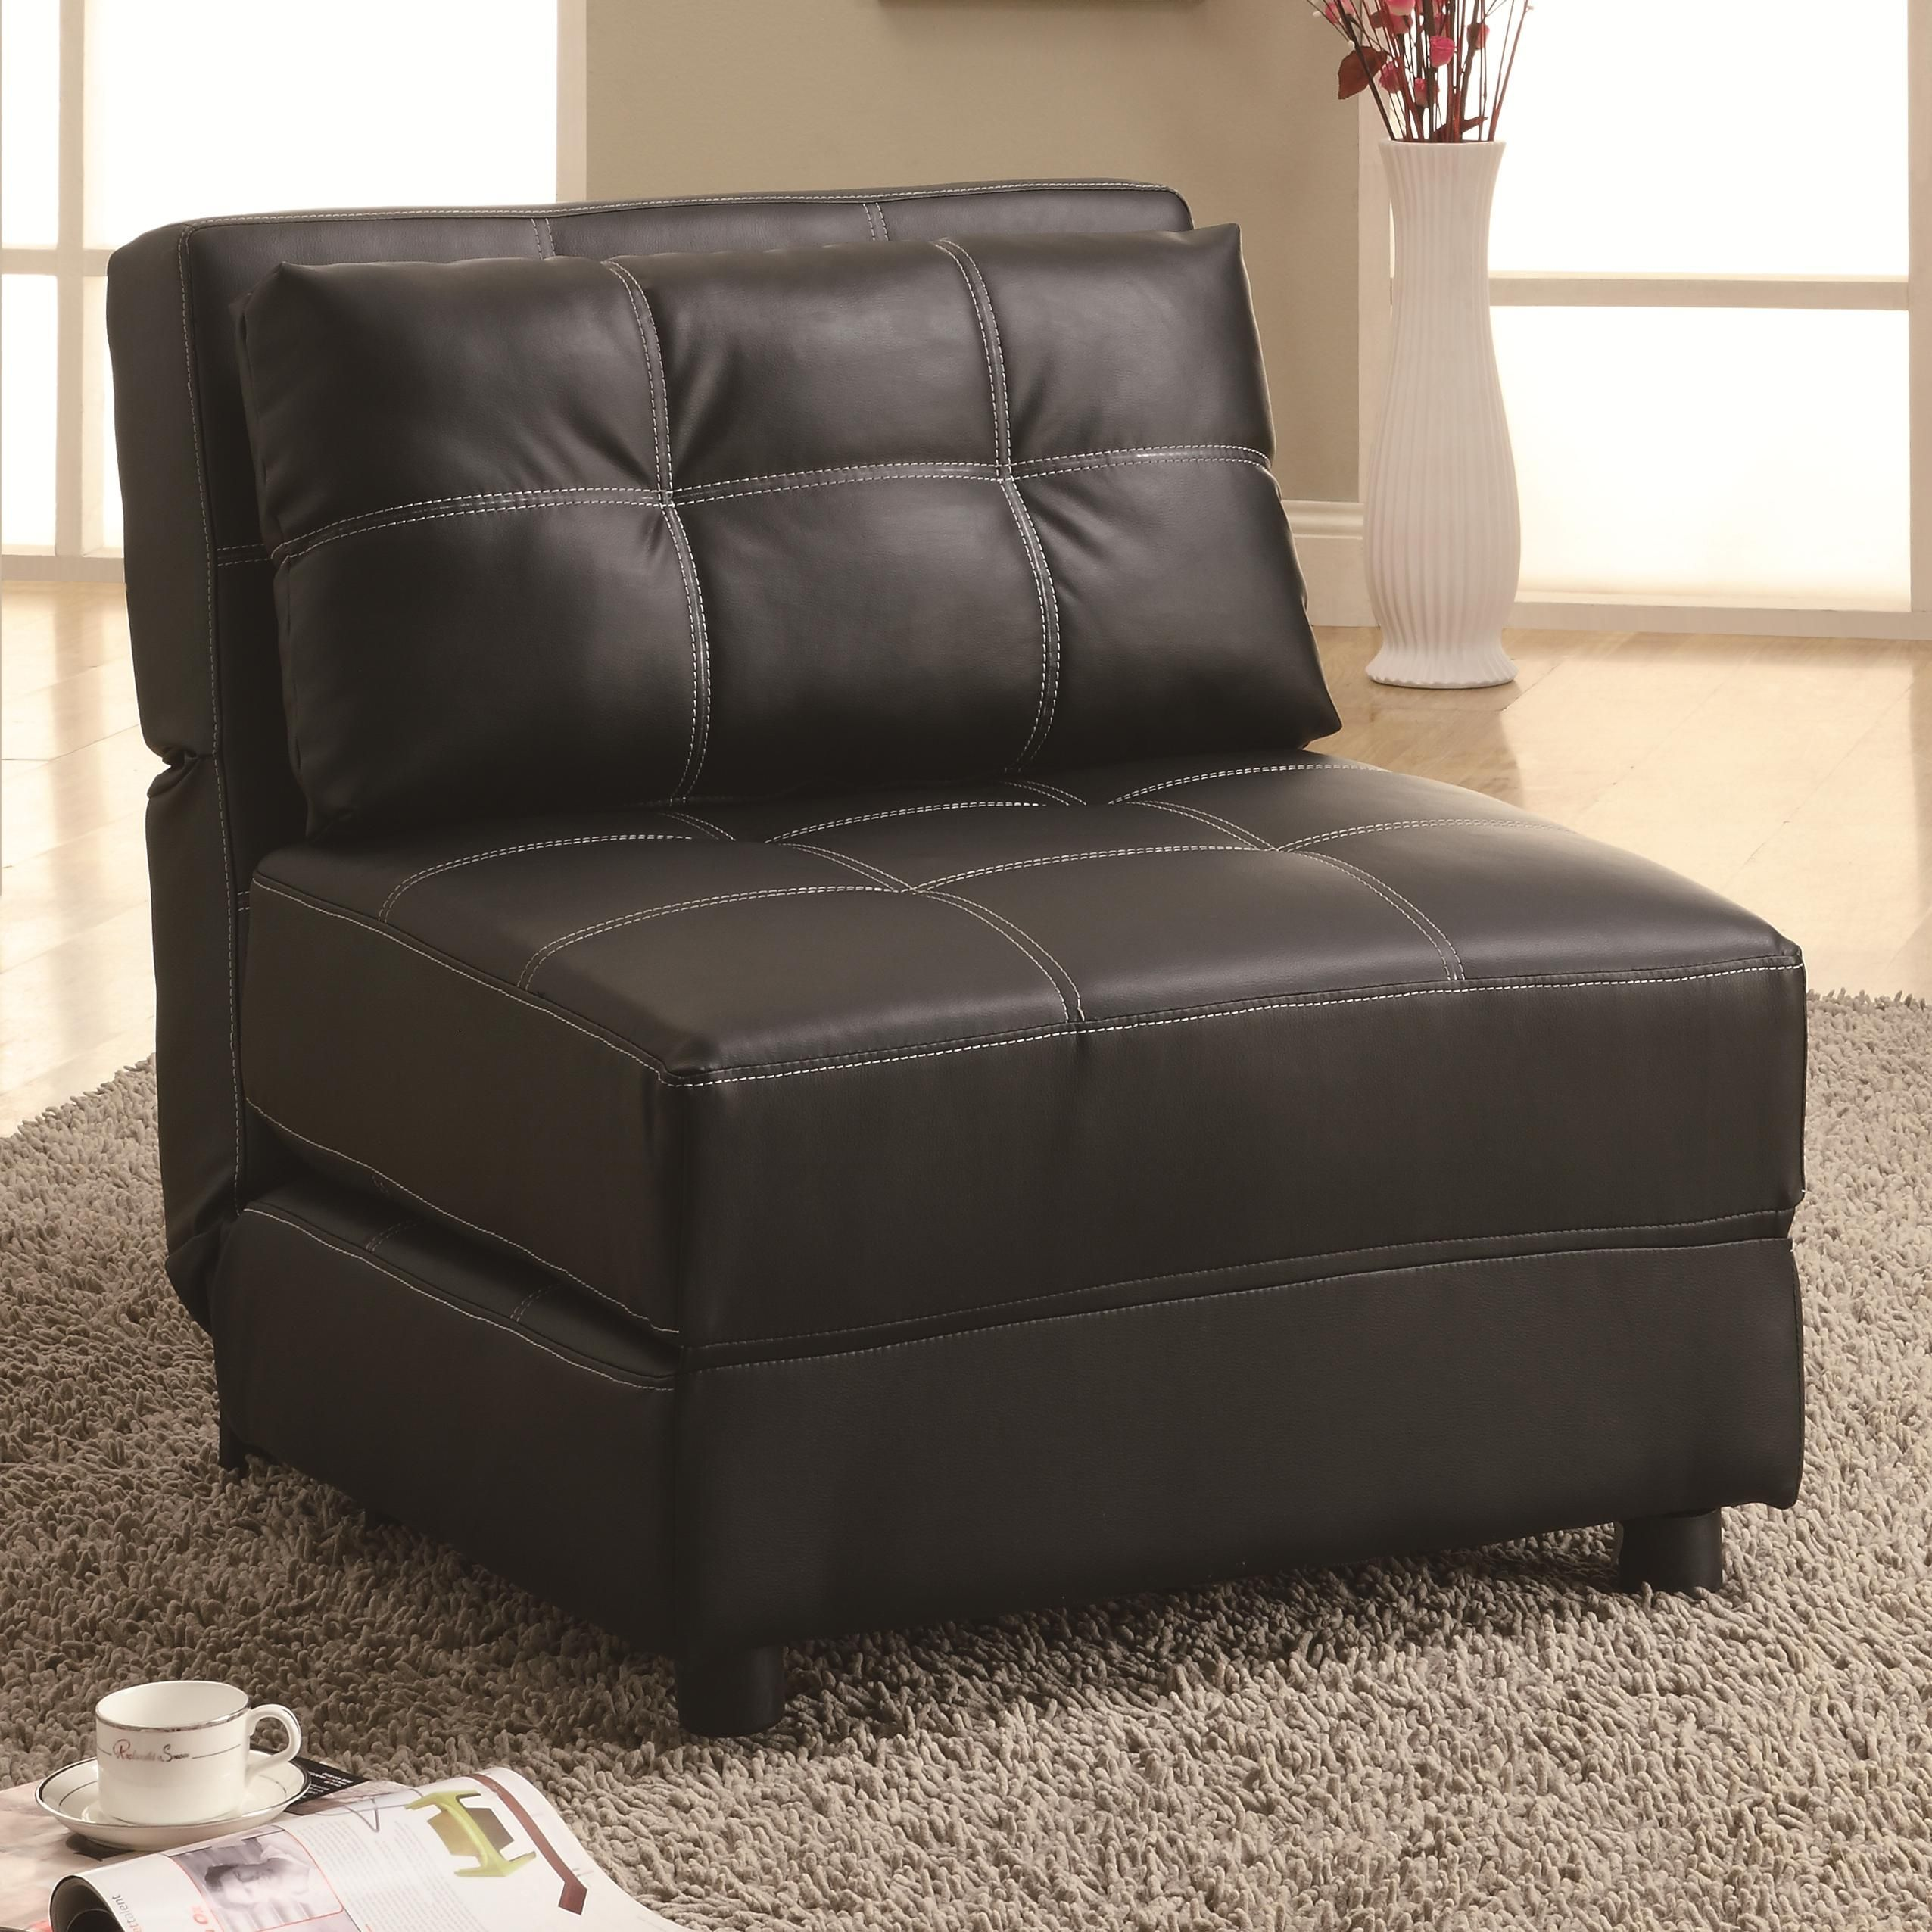 Accent Seating Contemporary Armless Lounge Chair/Sofa Bed